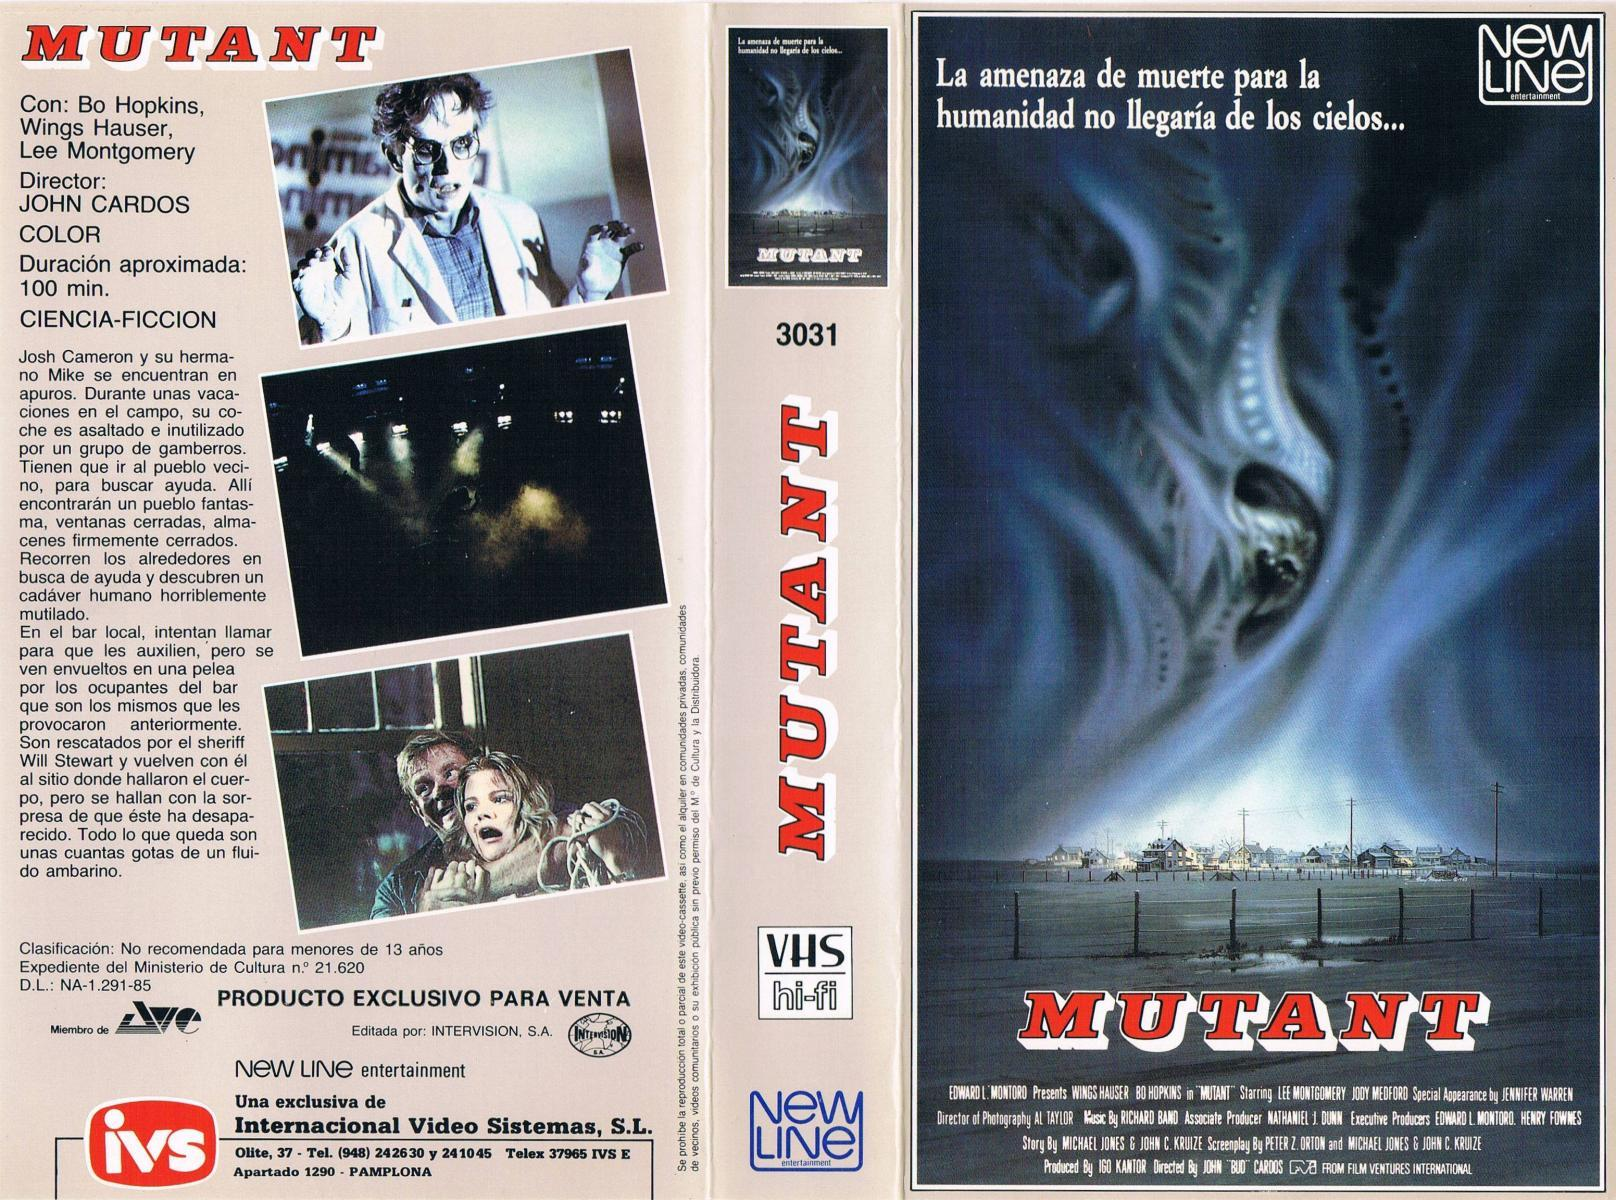 Las ultimas peliculas que has visto - Página 38 Mutant_night_shadows-837816674-large